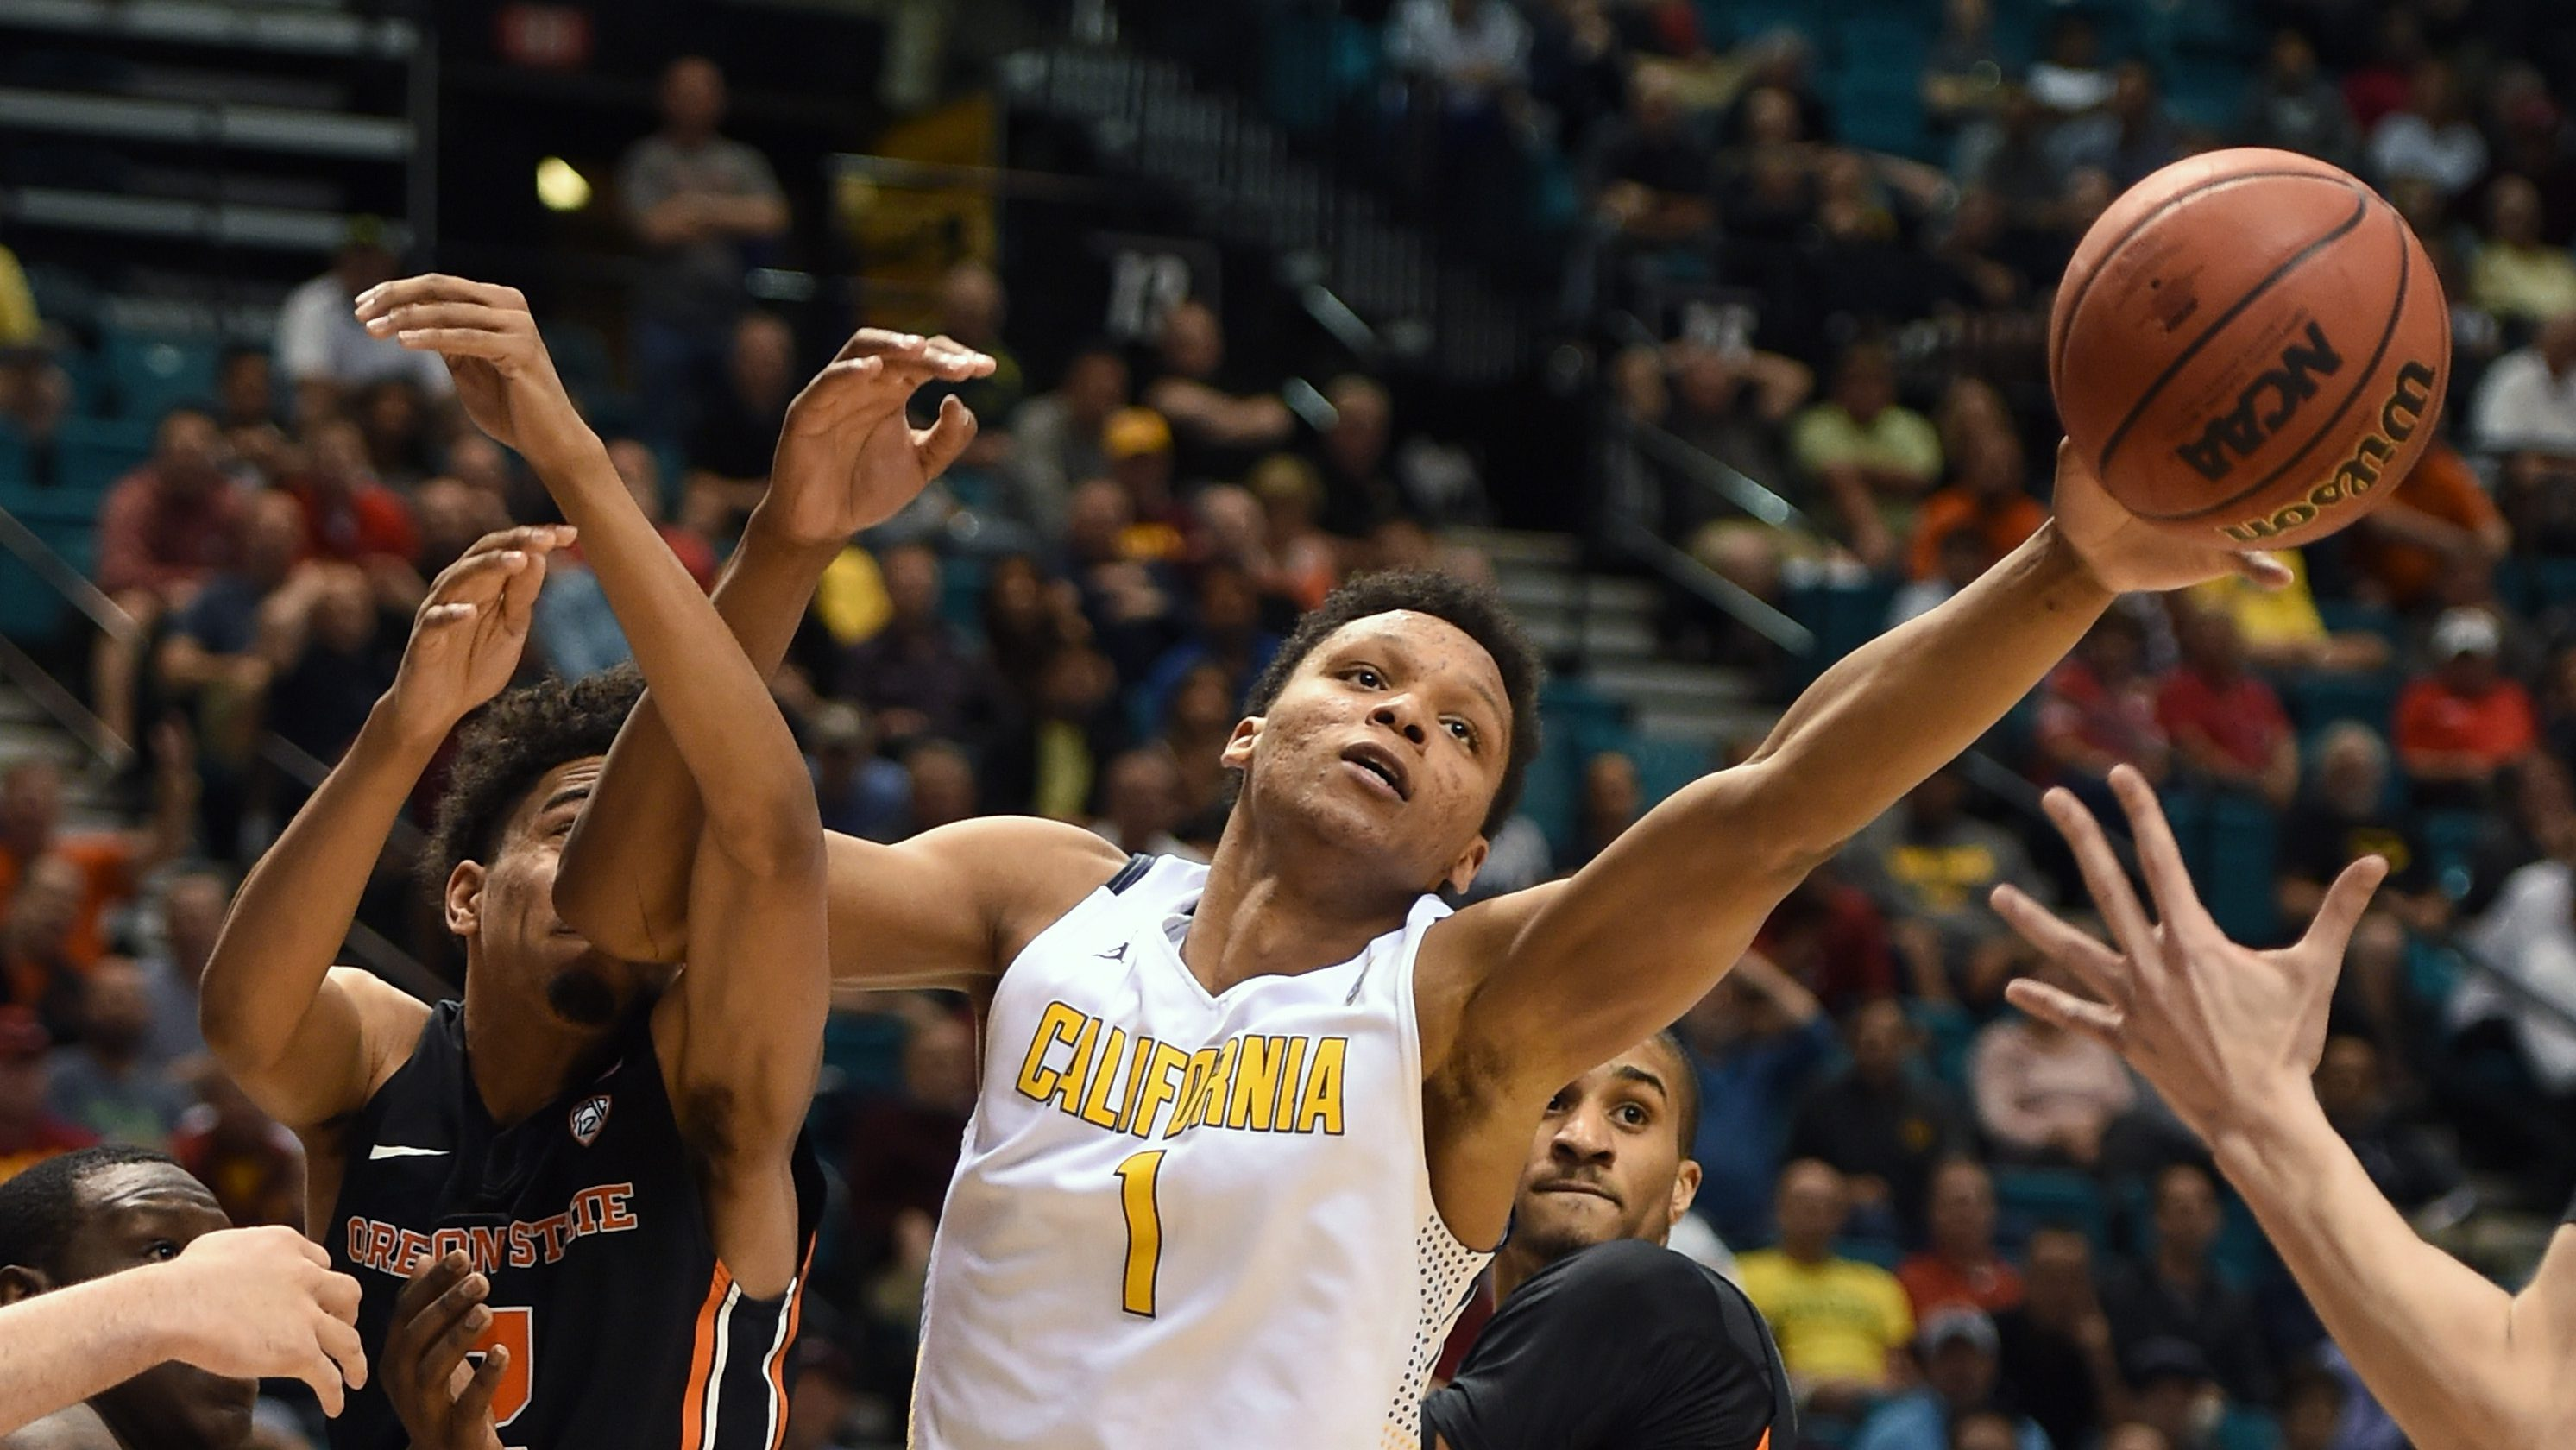 LAS VEGAS, NV - MARCH 10: Ivan Rabb #1 of the California Golden Bears and Stephen Thompson Jr. #2 of the Oregon State Beavers go after a rebound during a quarterfinal game of the Pac-12 Basketball Tournament at MGM Grand Garden Arena on March 10, 2016 in Las Vegas, Nevada. California won 76-68. (Photo by Ethan Miller/Getty Images)